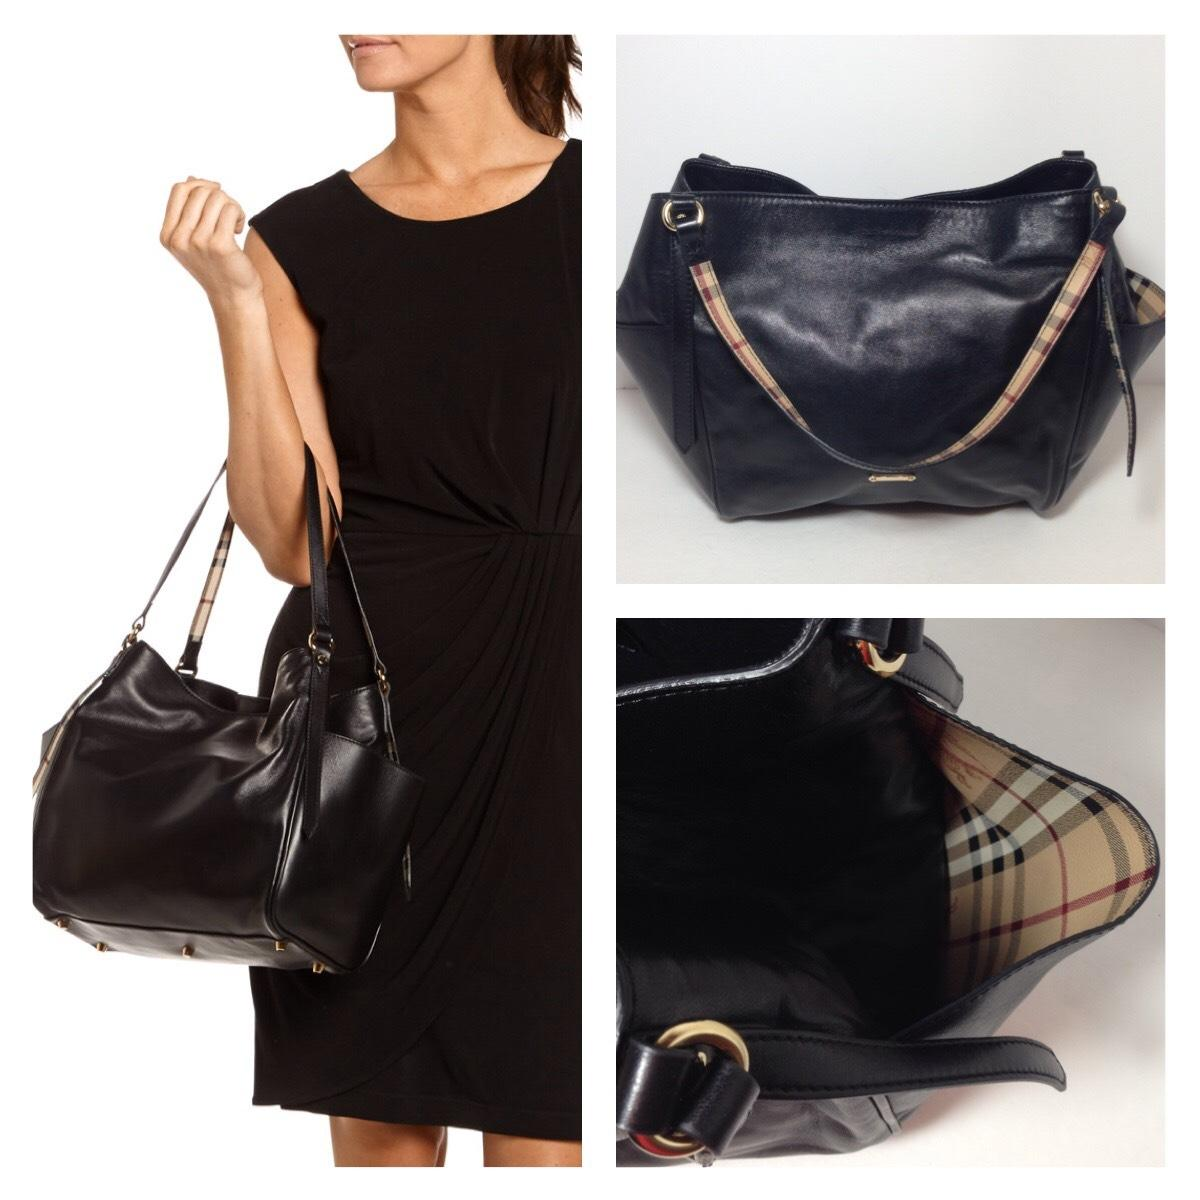 Buy burberry canterbury tote black  Free shipping for worldwide ... 44615c51aab71